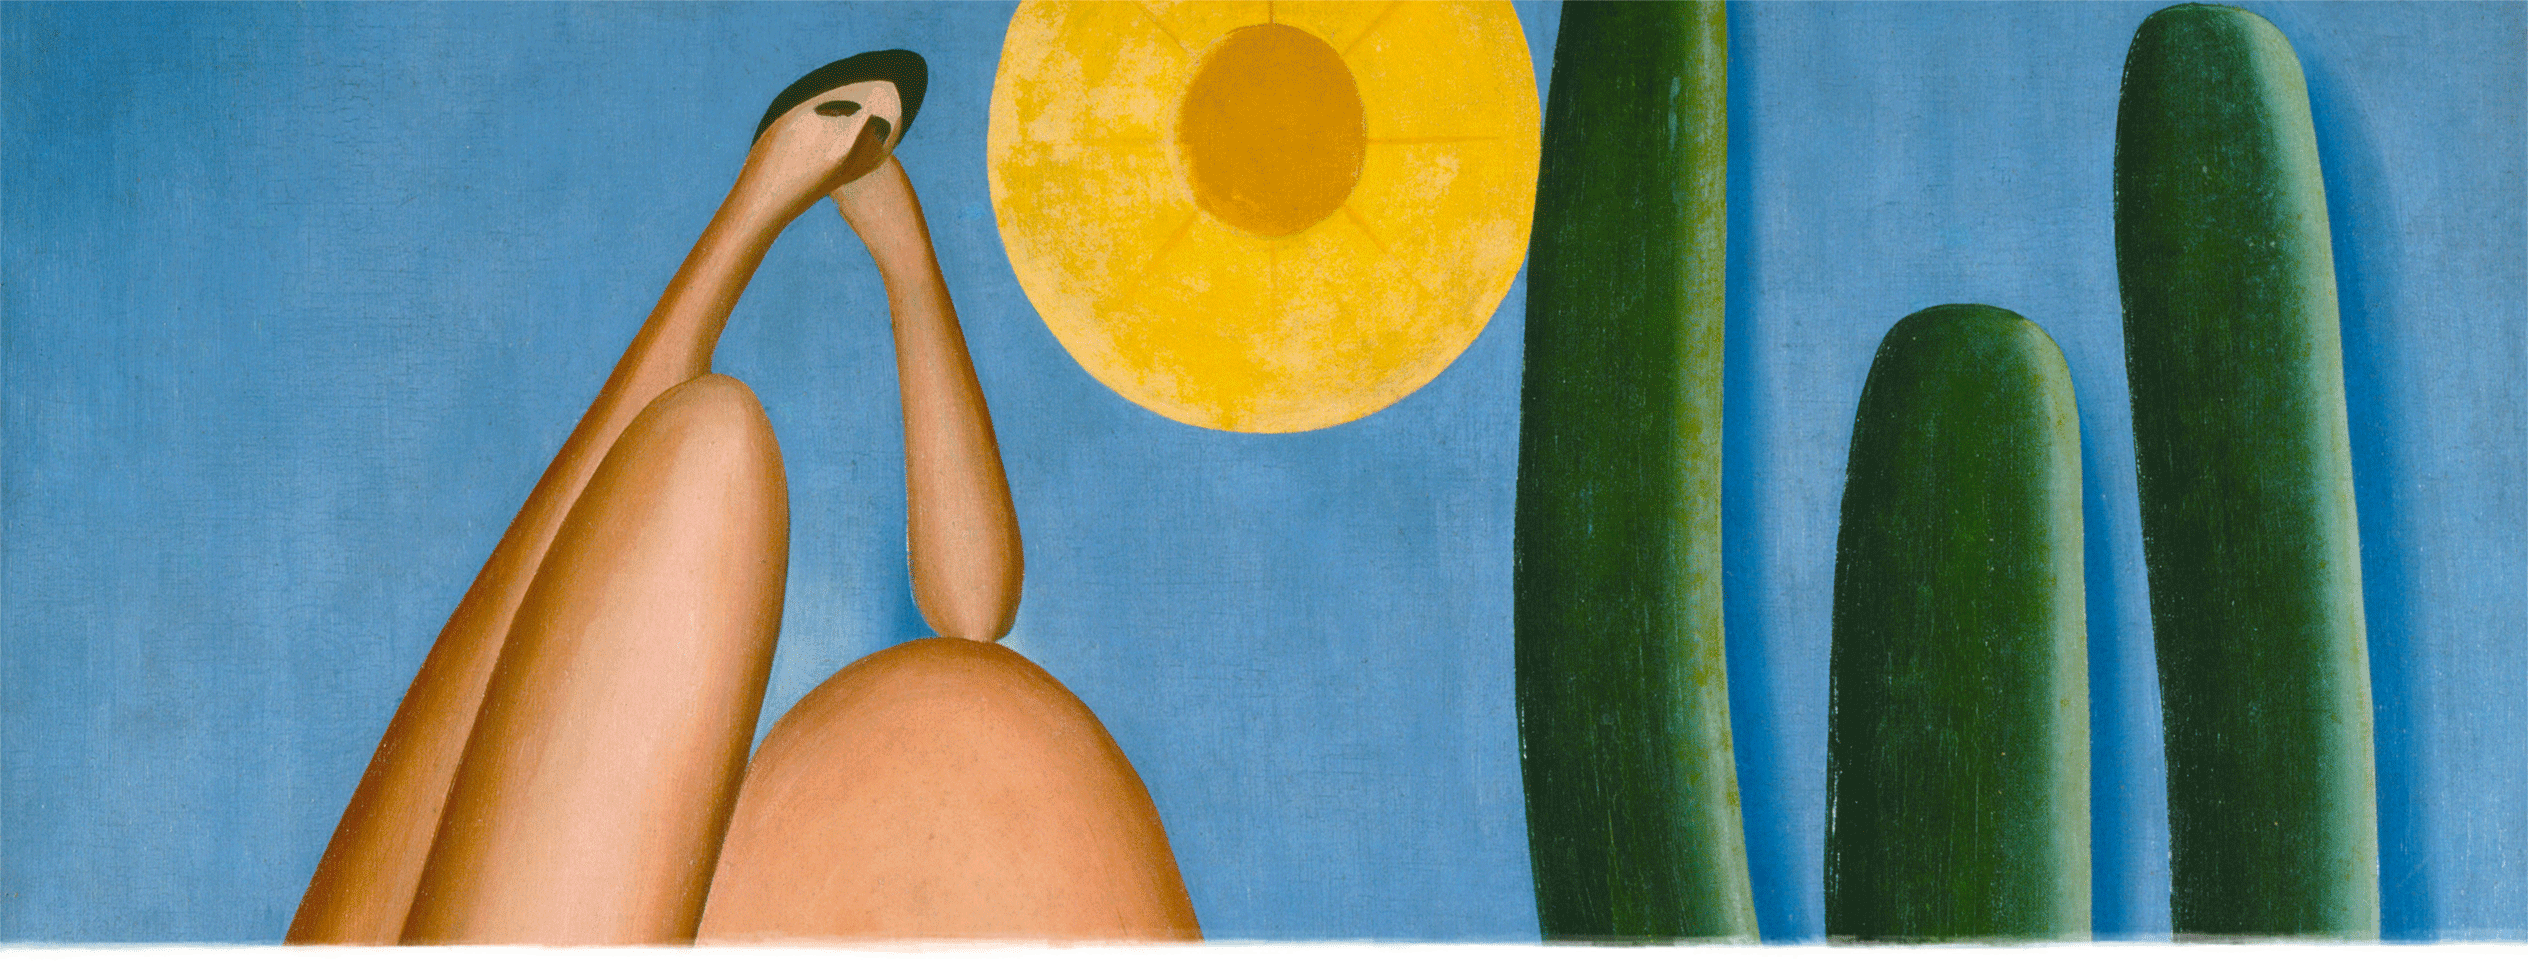 Tropical Sublime: Tarsila do Amaral at MoMA